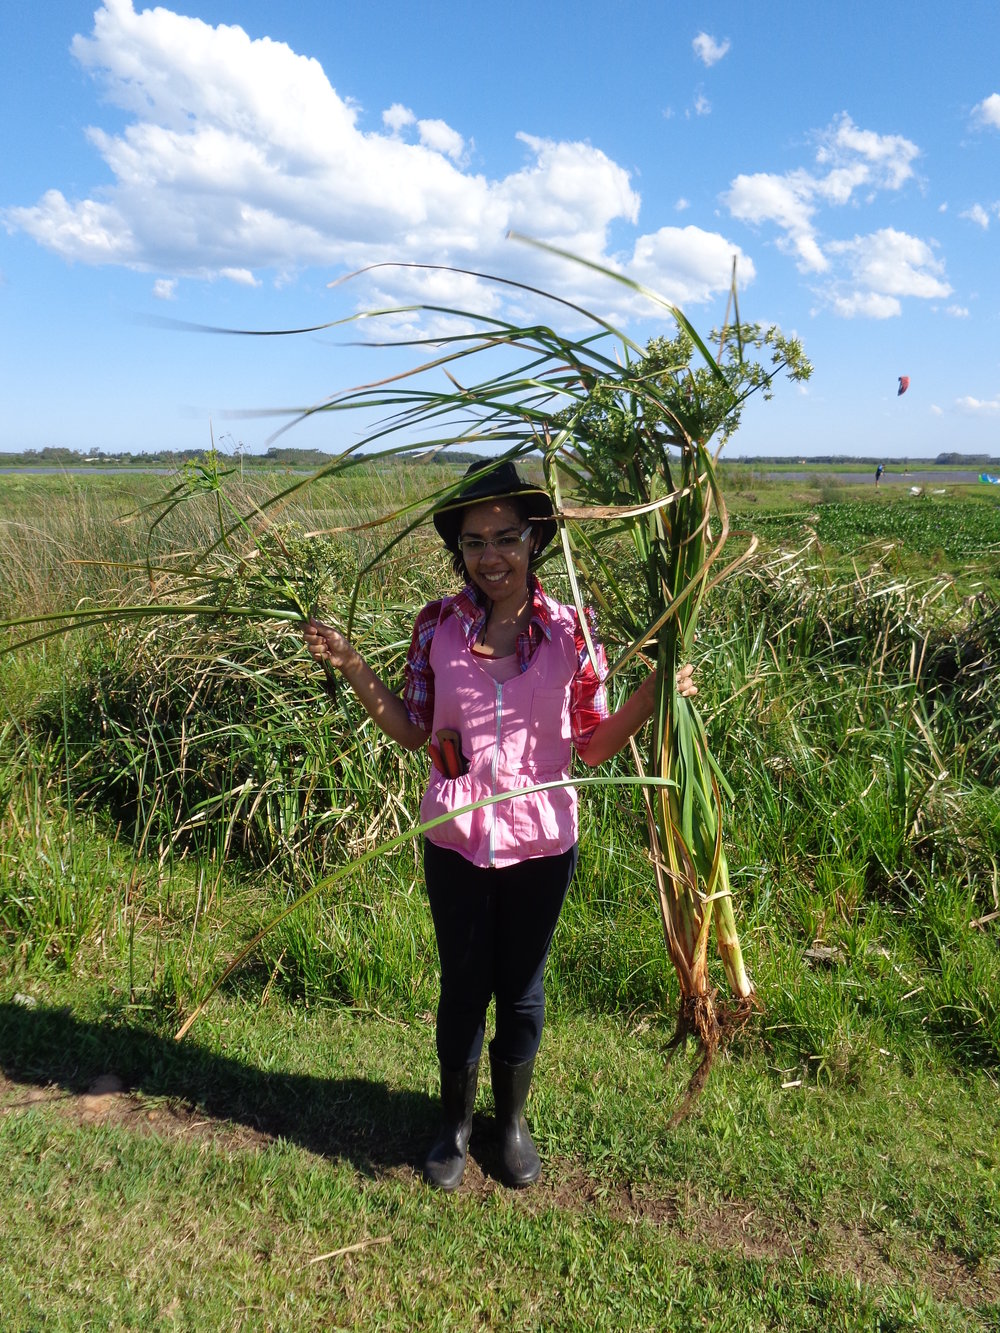 Luciana Pereira da Silva   Universidade Federal de Santa Catarina  Ph.D. project: Integrative studies on the diverse genus  Cyperus s.l.  (Cyperaceae): diversity in Central Brazil, molecular phylogeny, and lineage diversification